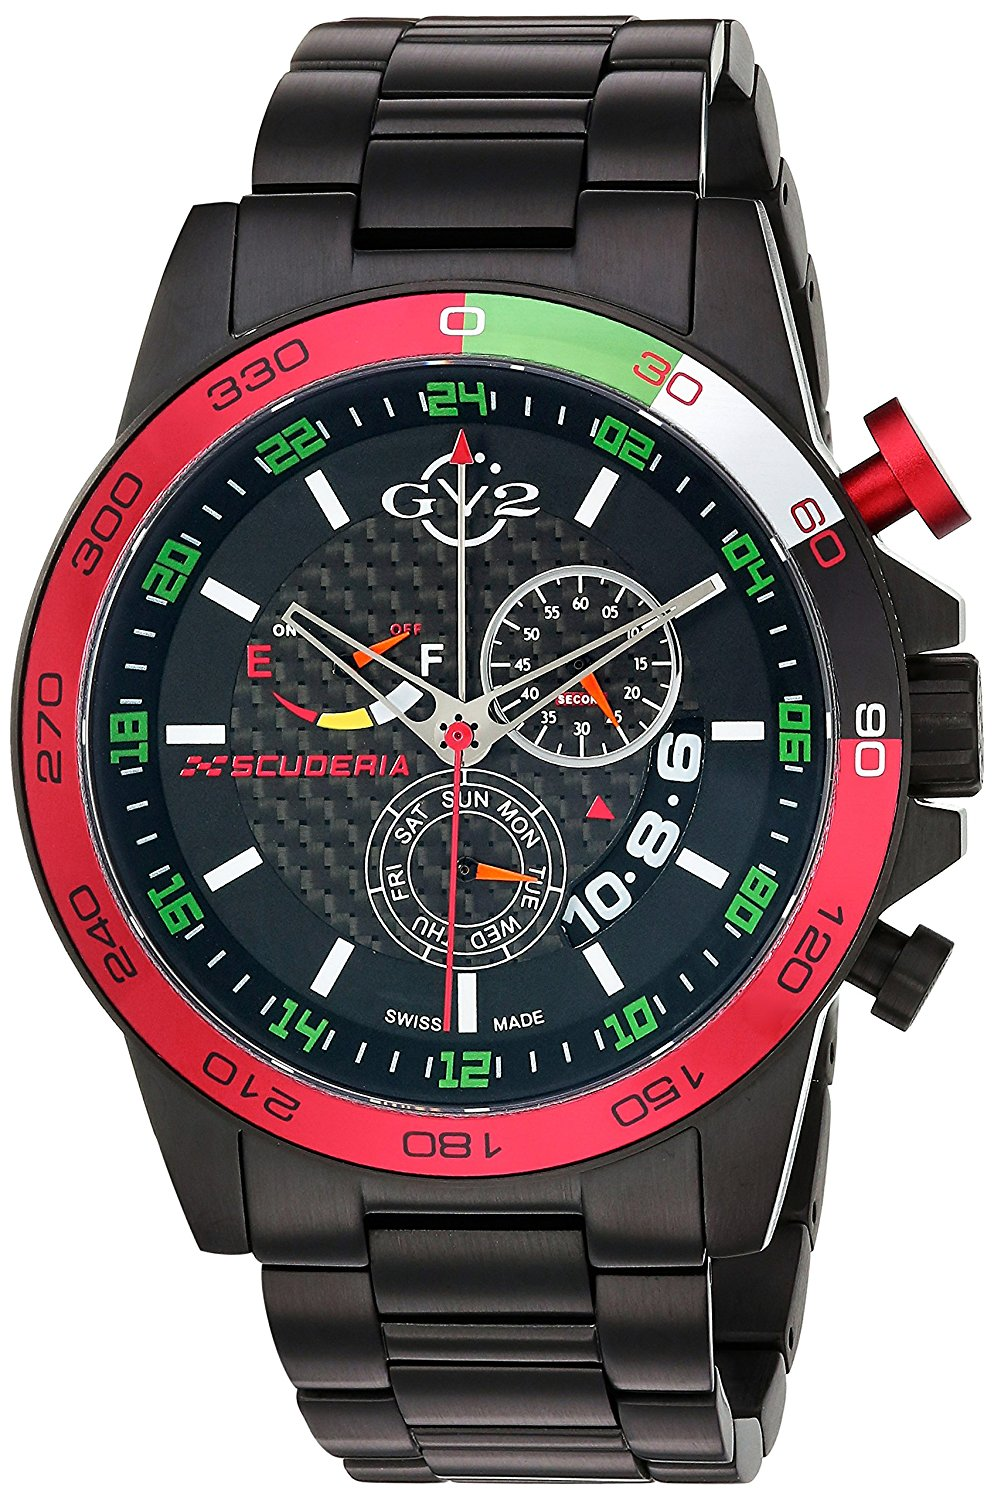 GV2 by Gevril Scuderia Mens Chronograph Swiss Quartz Alarm GMT Black Stainless Steel Sports Racing Watch, (Model: 9907)